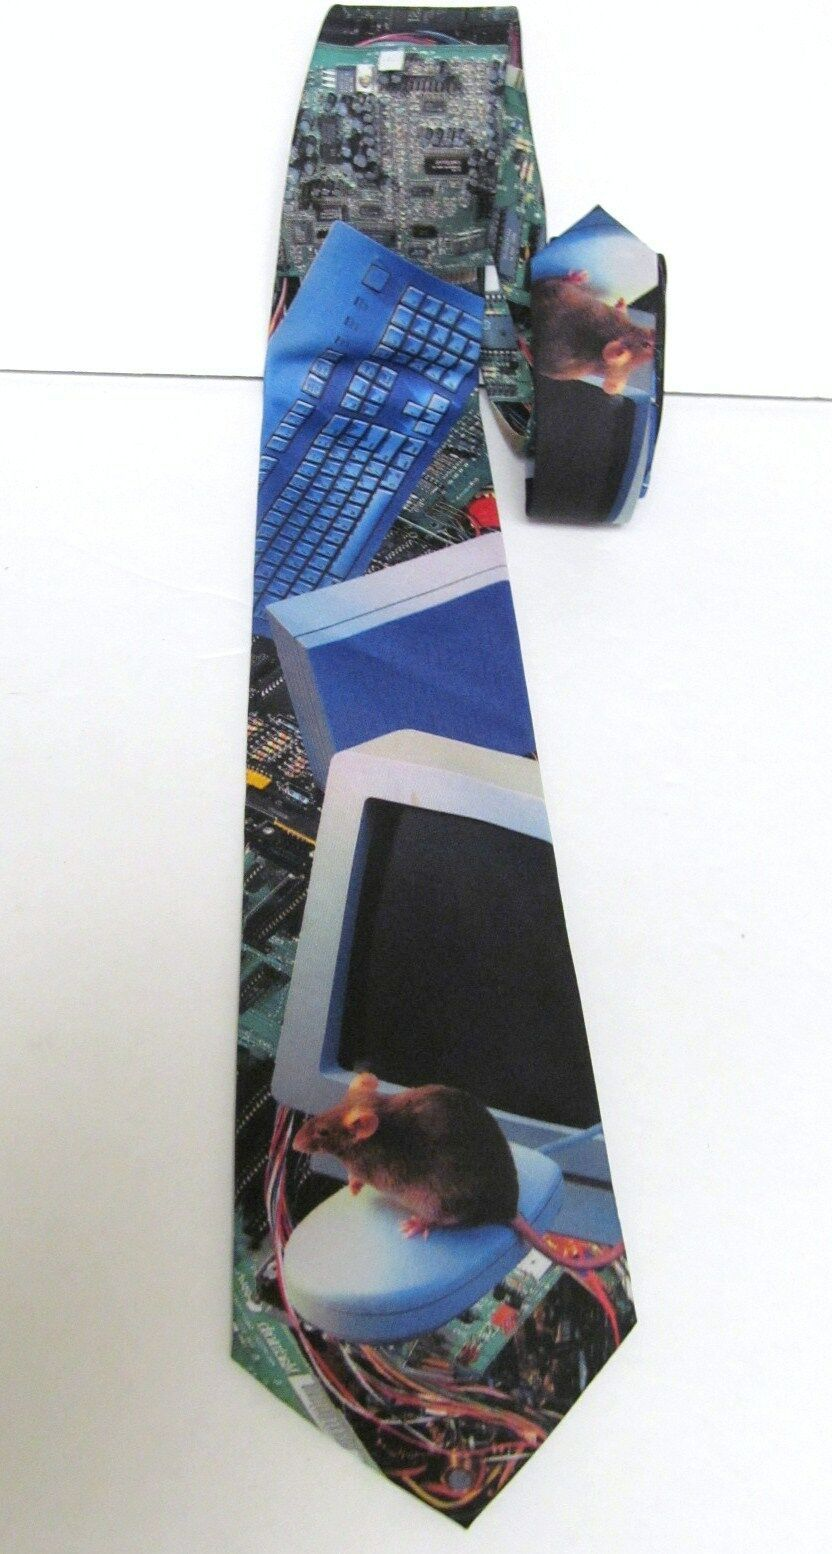 Ralph Marlin COMPUTER IMAGES W Mouse 100% Polyester Neck Tie Multi Color USA